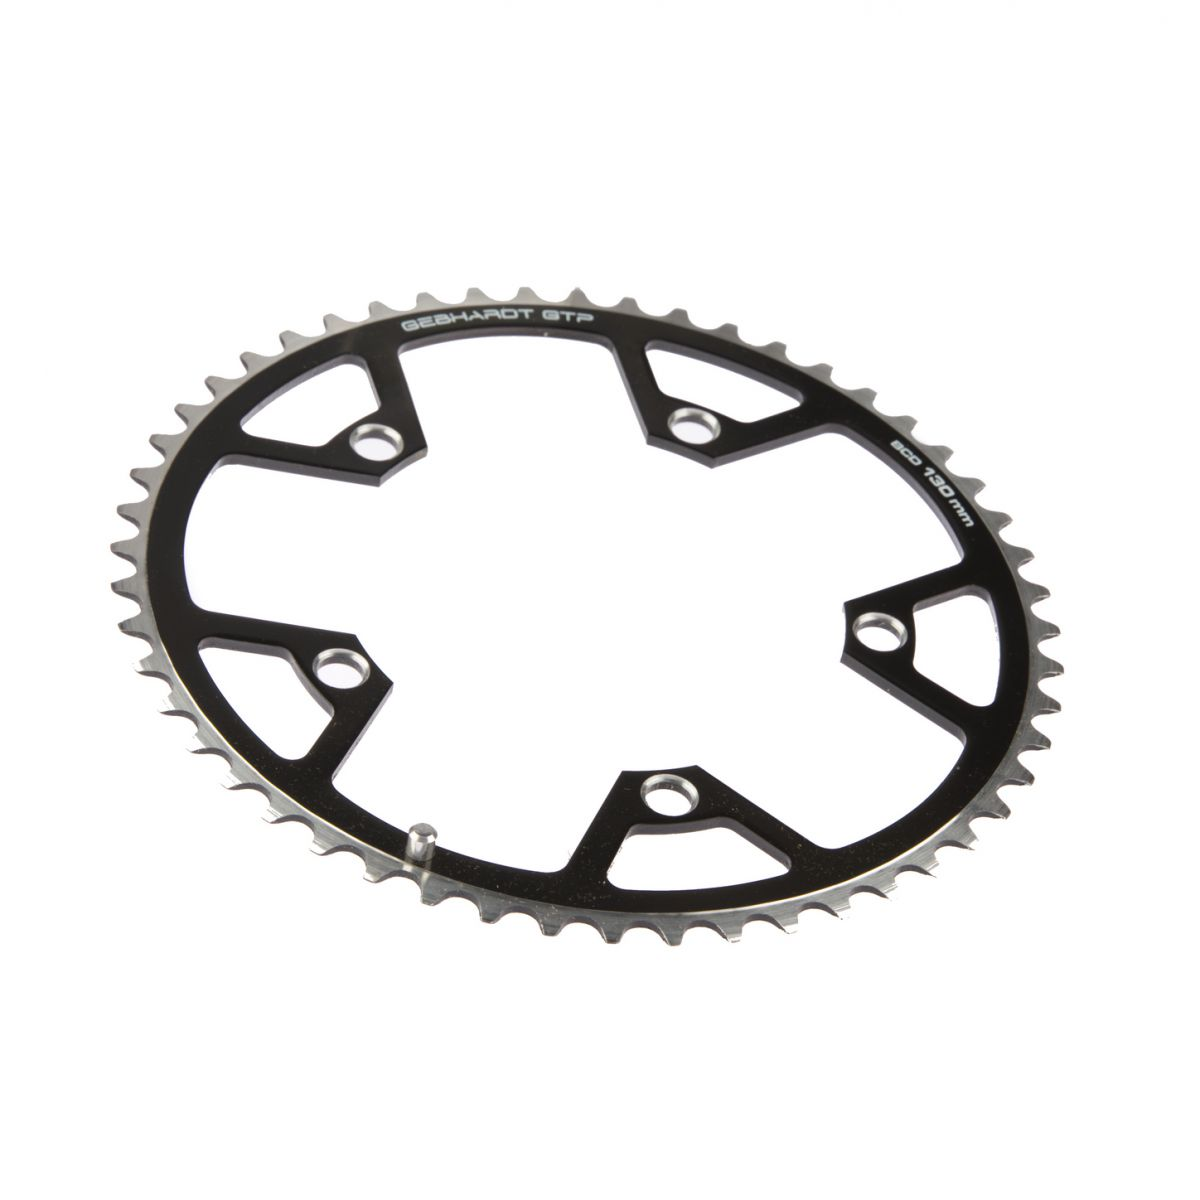 gebhardt chainring classic bcd 130 mm 5hole 47t black